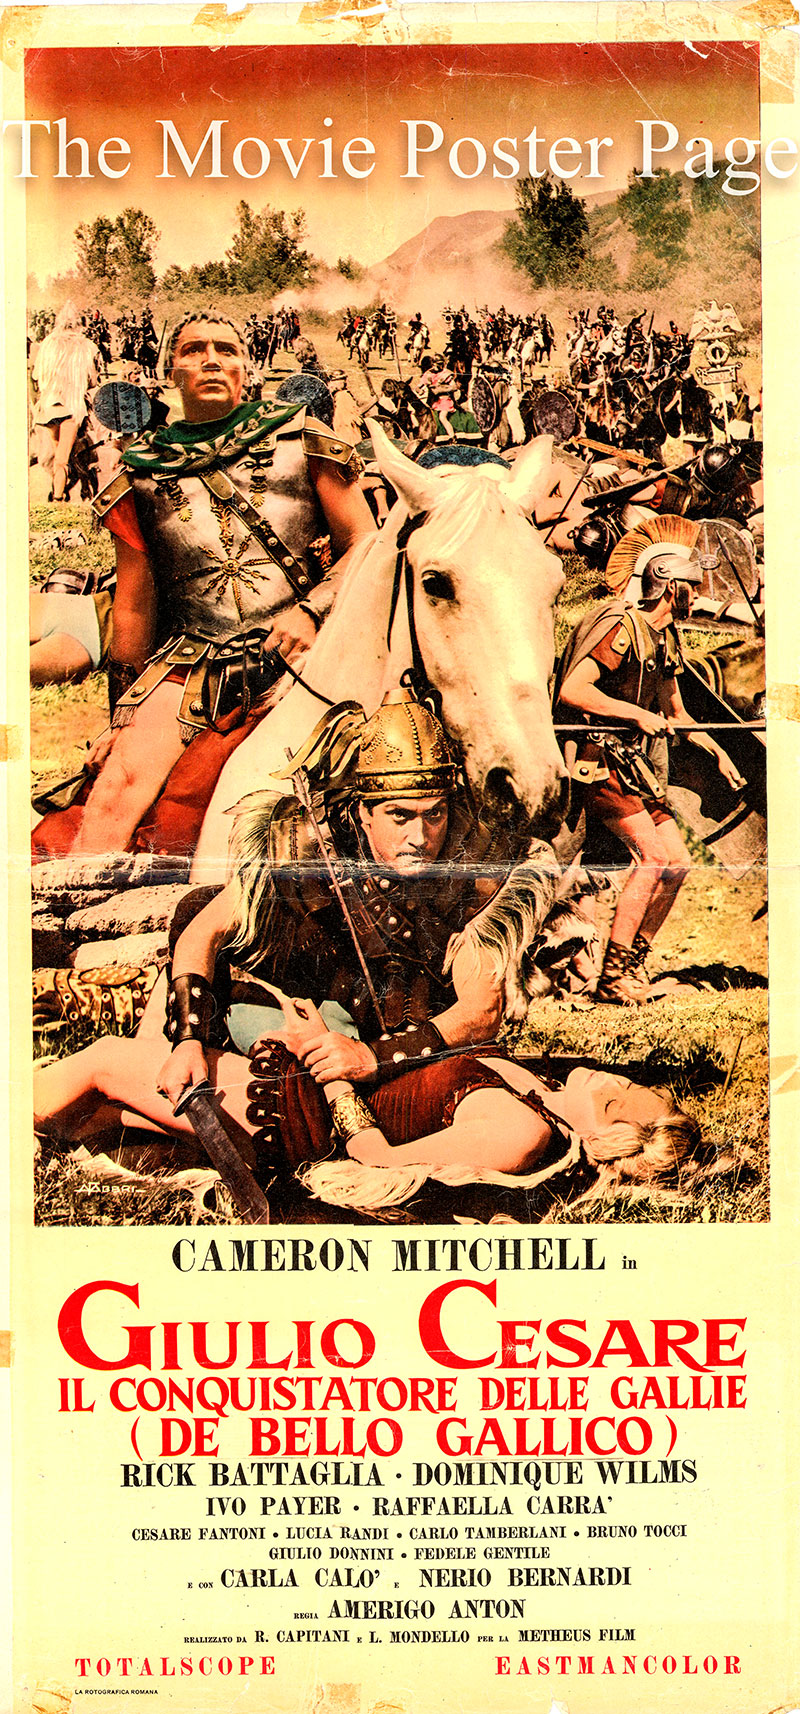 Pictured is an Italian locandina promotional poster for the 1962 Tanio Boccia film Caesar the Conqueror starring Cameron Mitchell as Caesar.